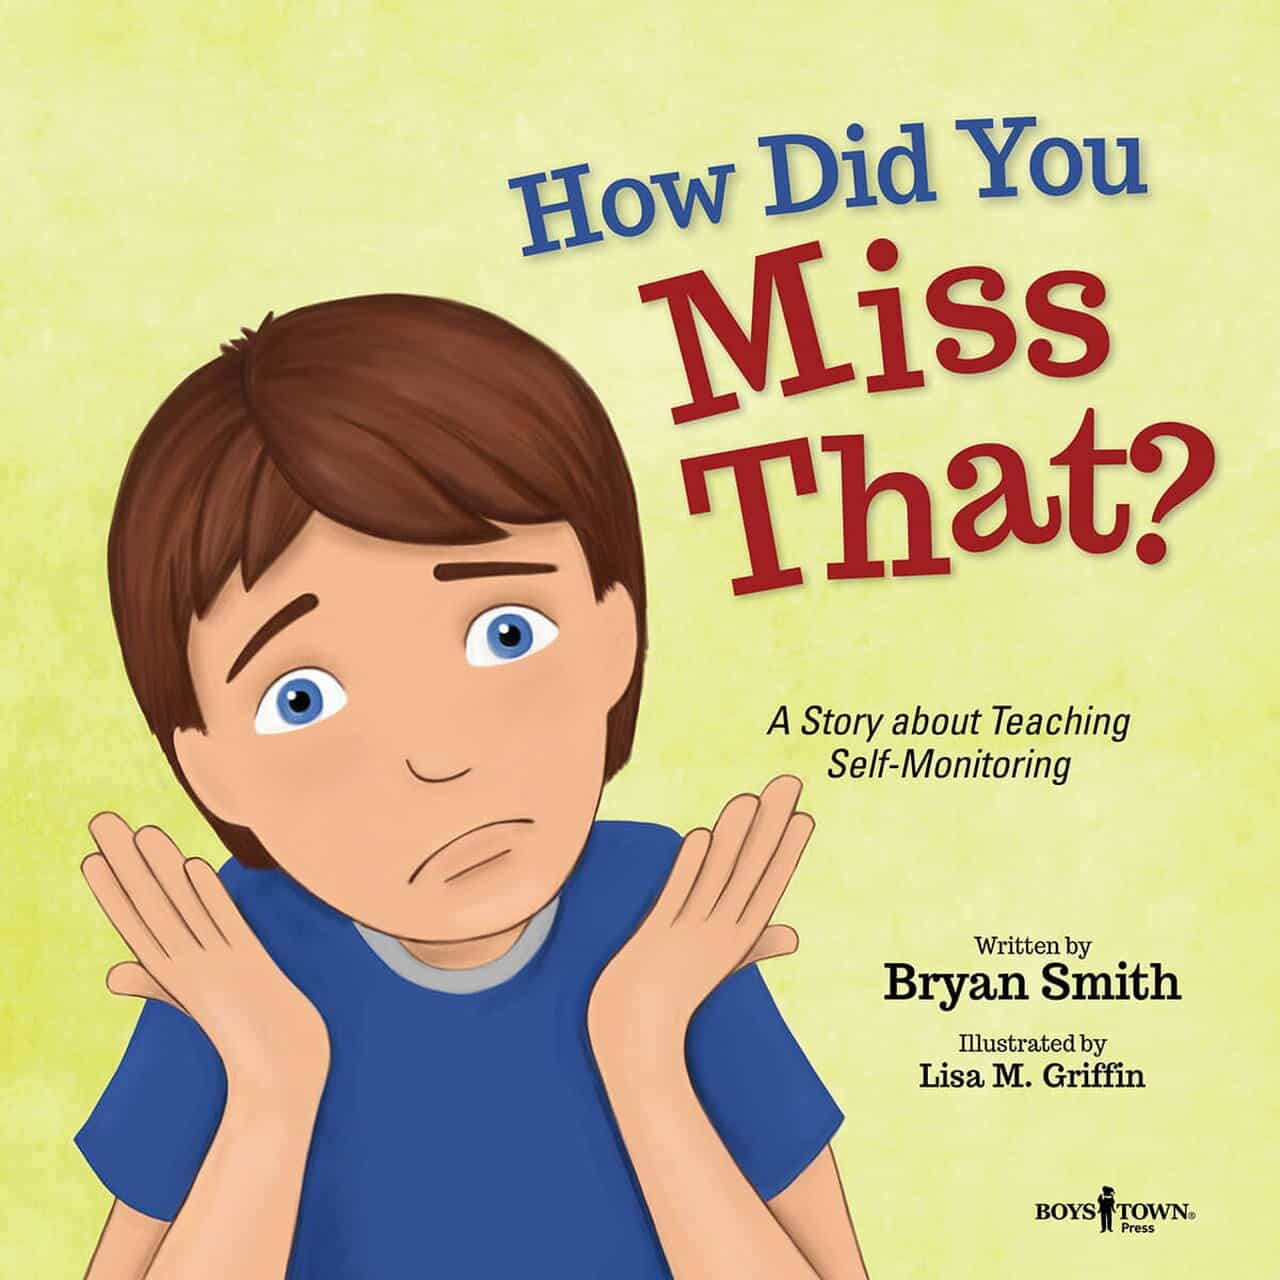 Book Cover for How Did You Miss That by Bryan Smith